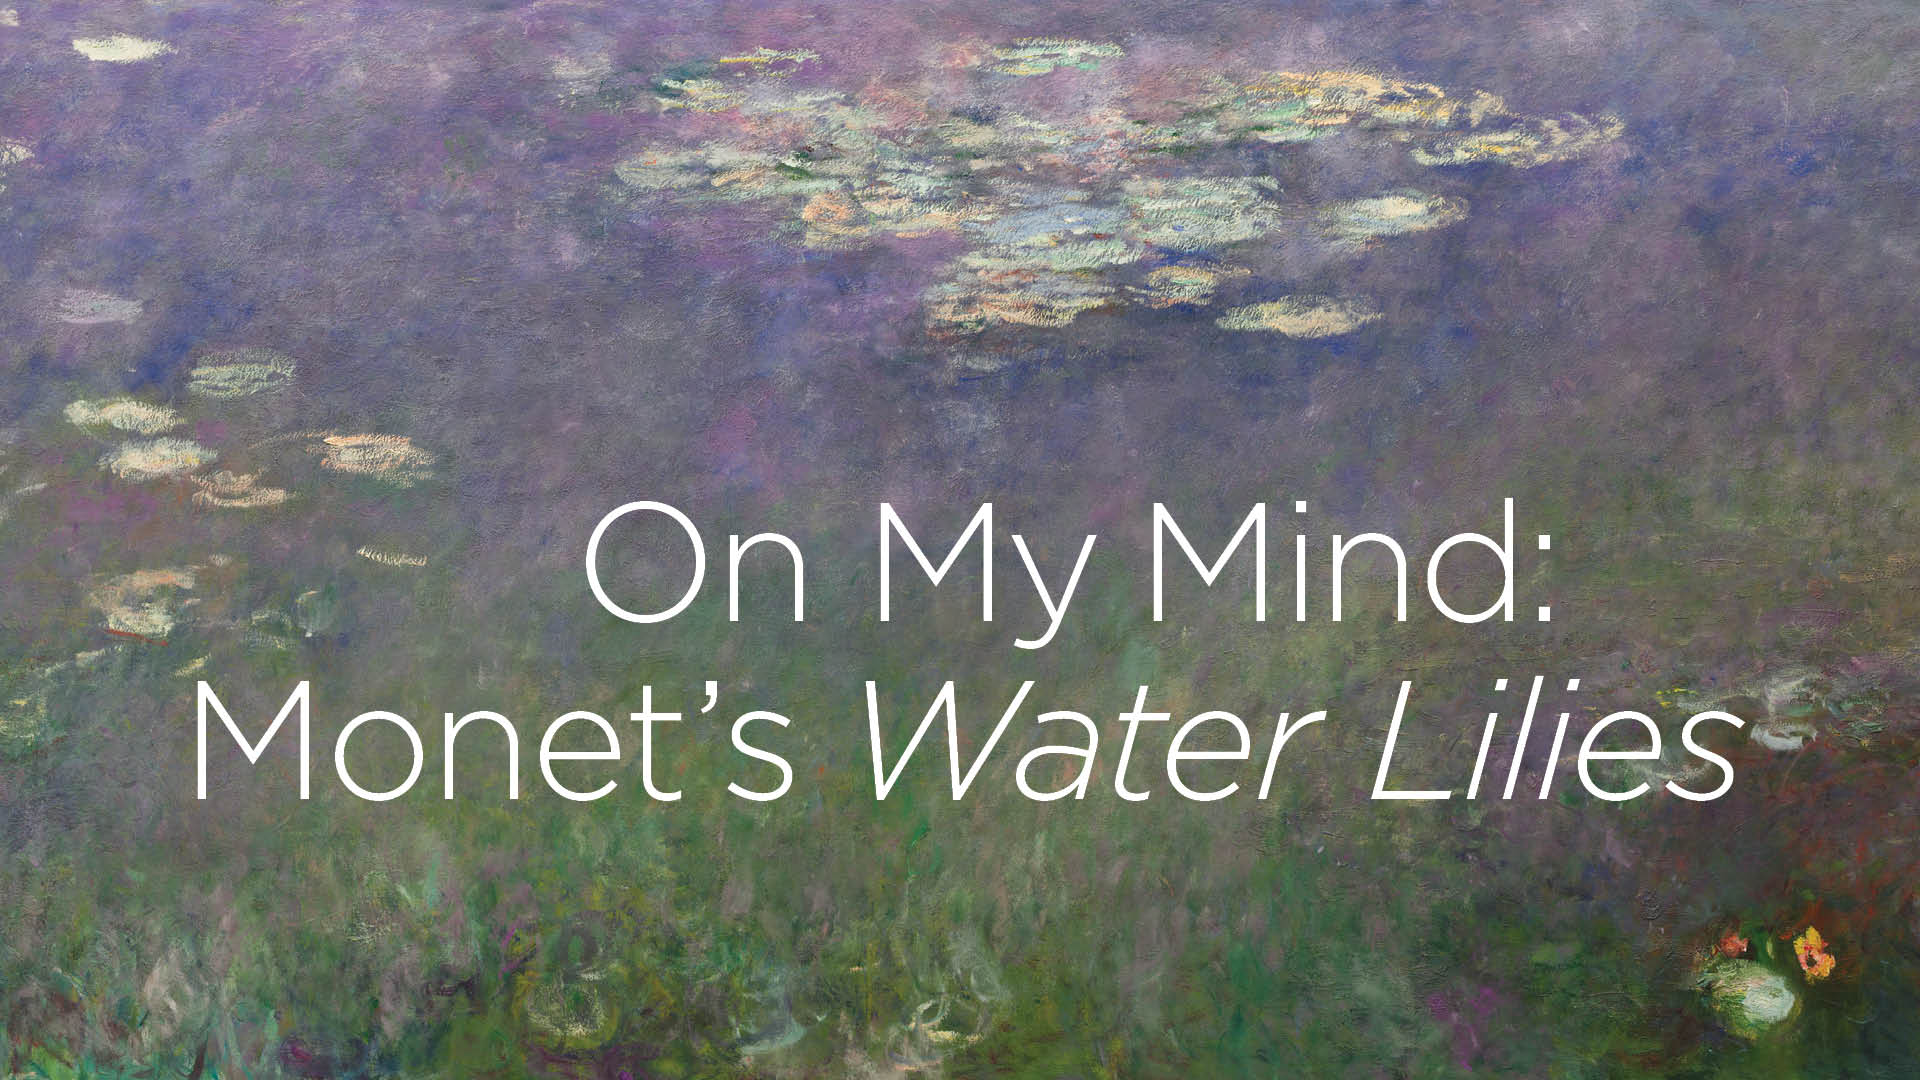 On My Mind: Monet's Water Lilies